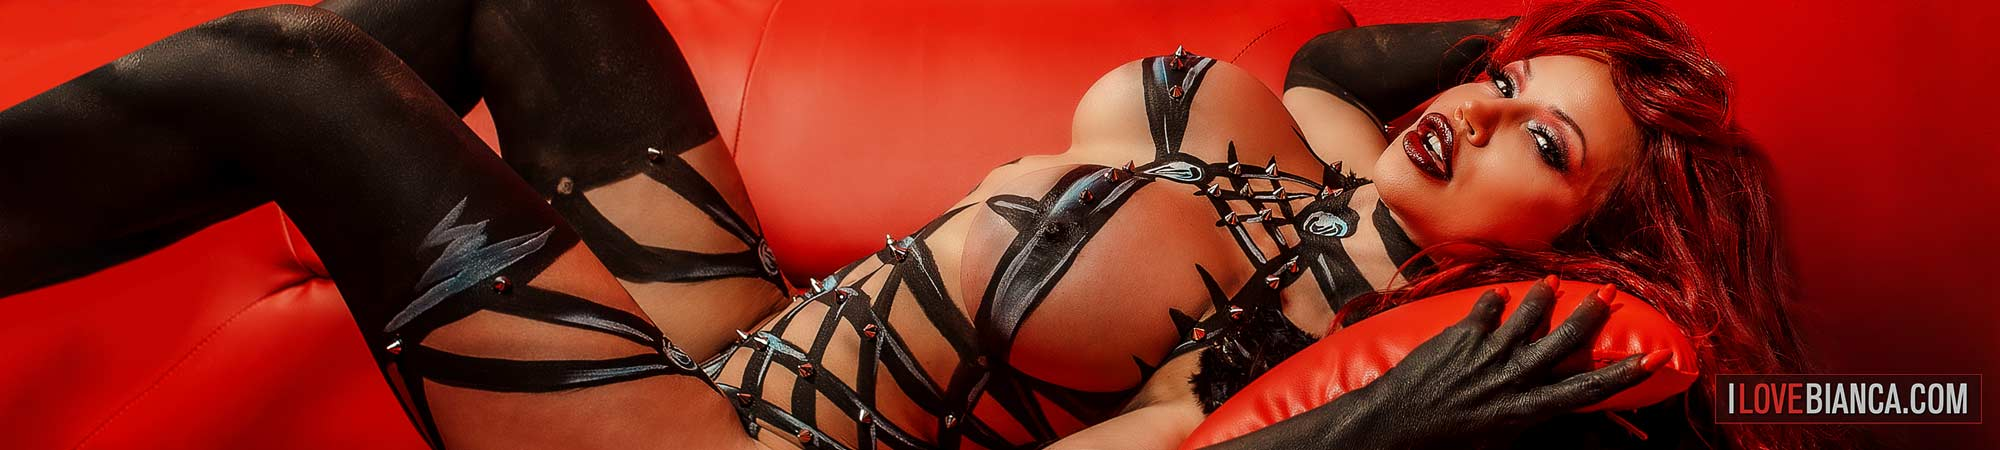 Bianca Beauchamp Official Website : Latex, Glam, Lingerie Photos + Videos